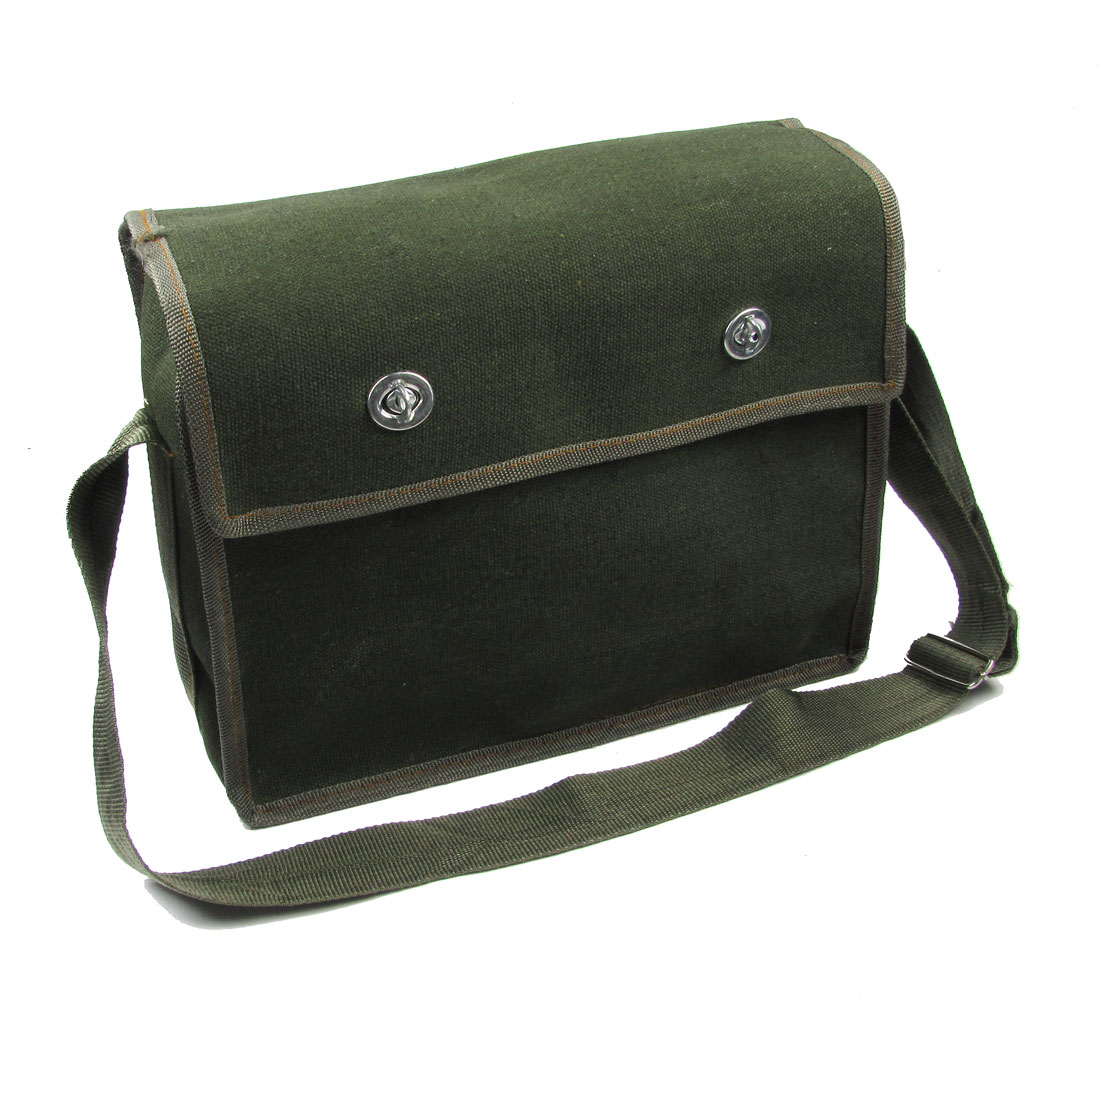 Adjustable Shoulder Strap Double Pockets Army Green Electrician Canvas Bag